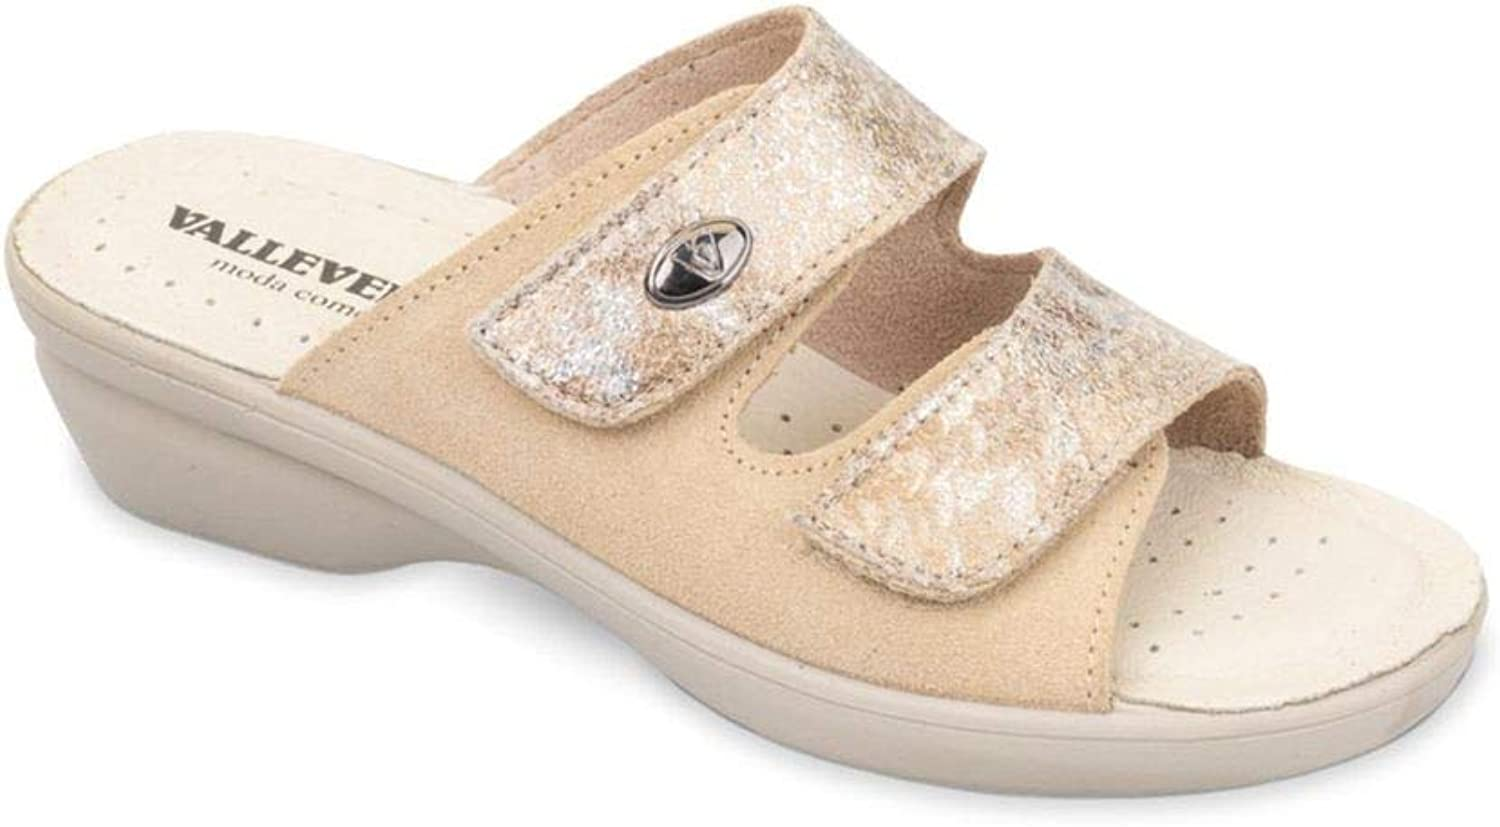 Vallegreen 25318 Sandals Slippers Woman Leather Tear Made in